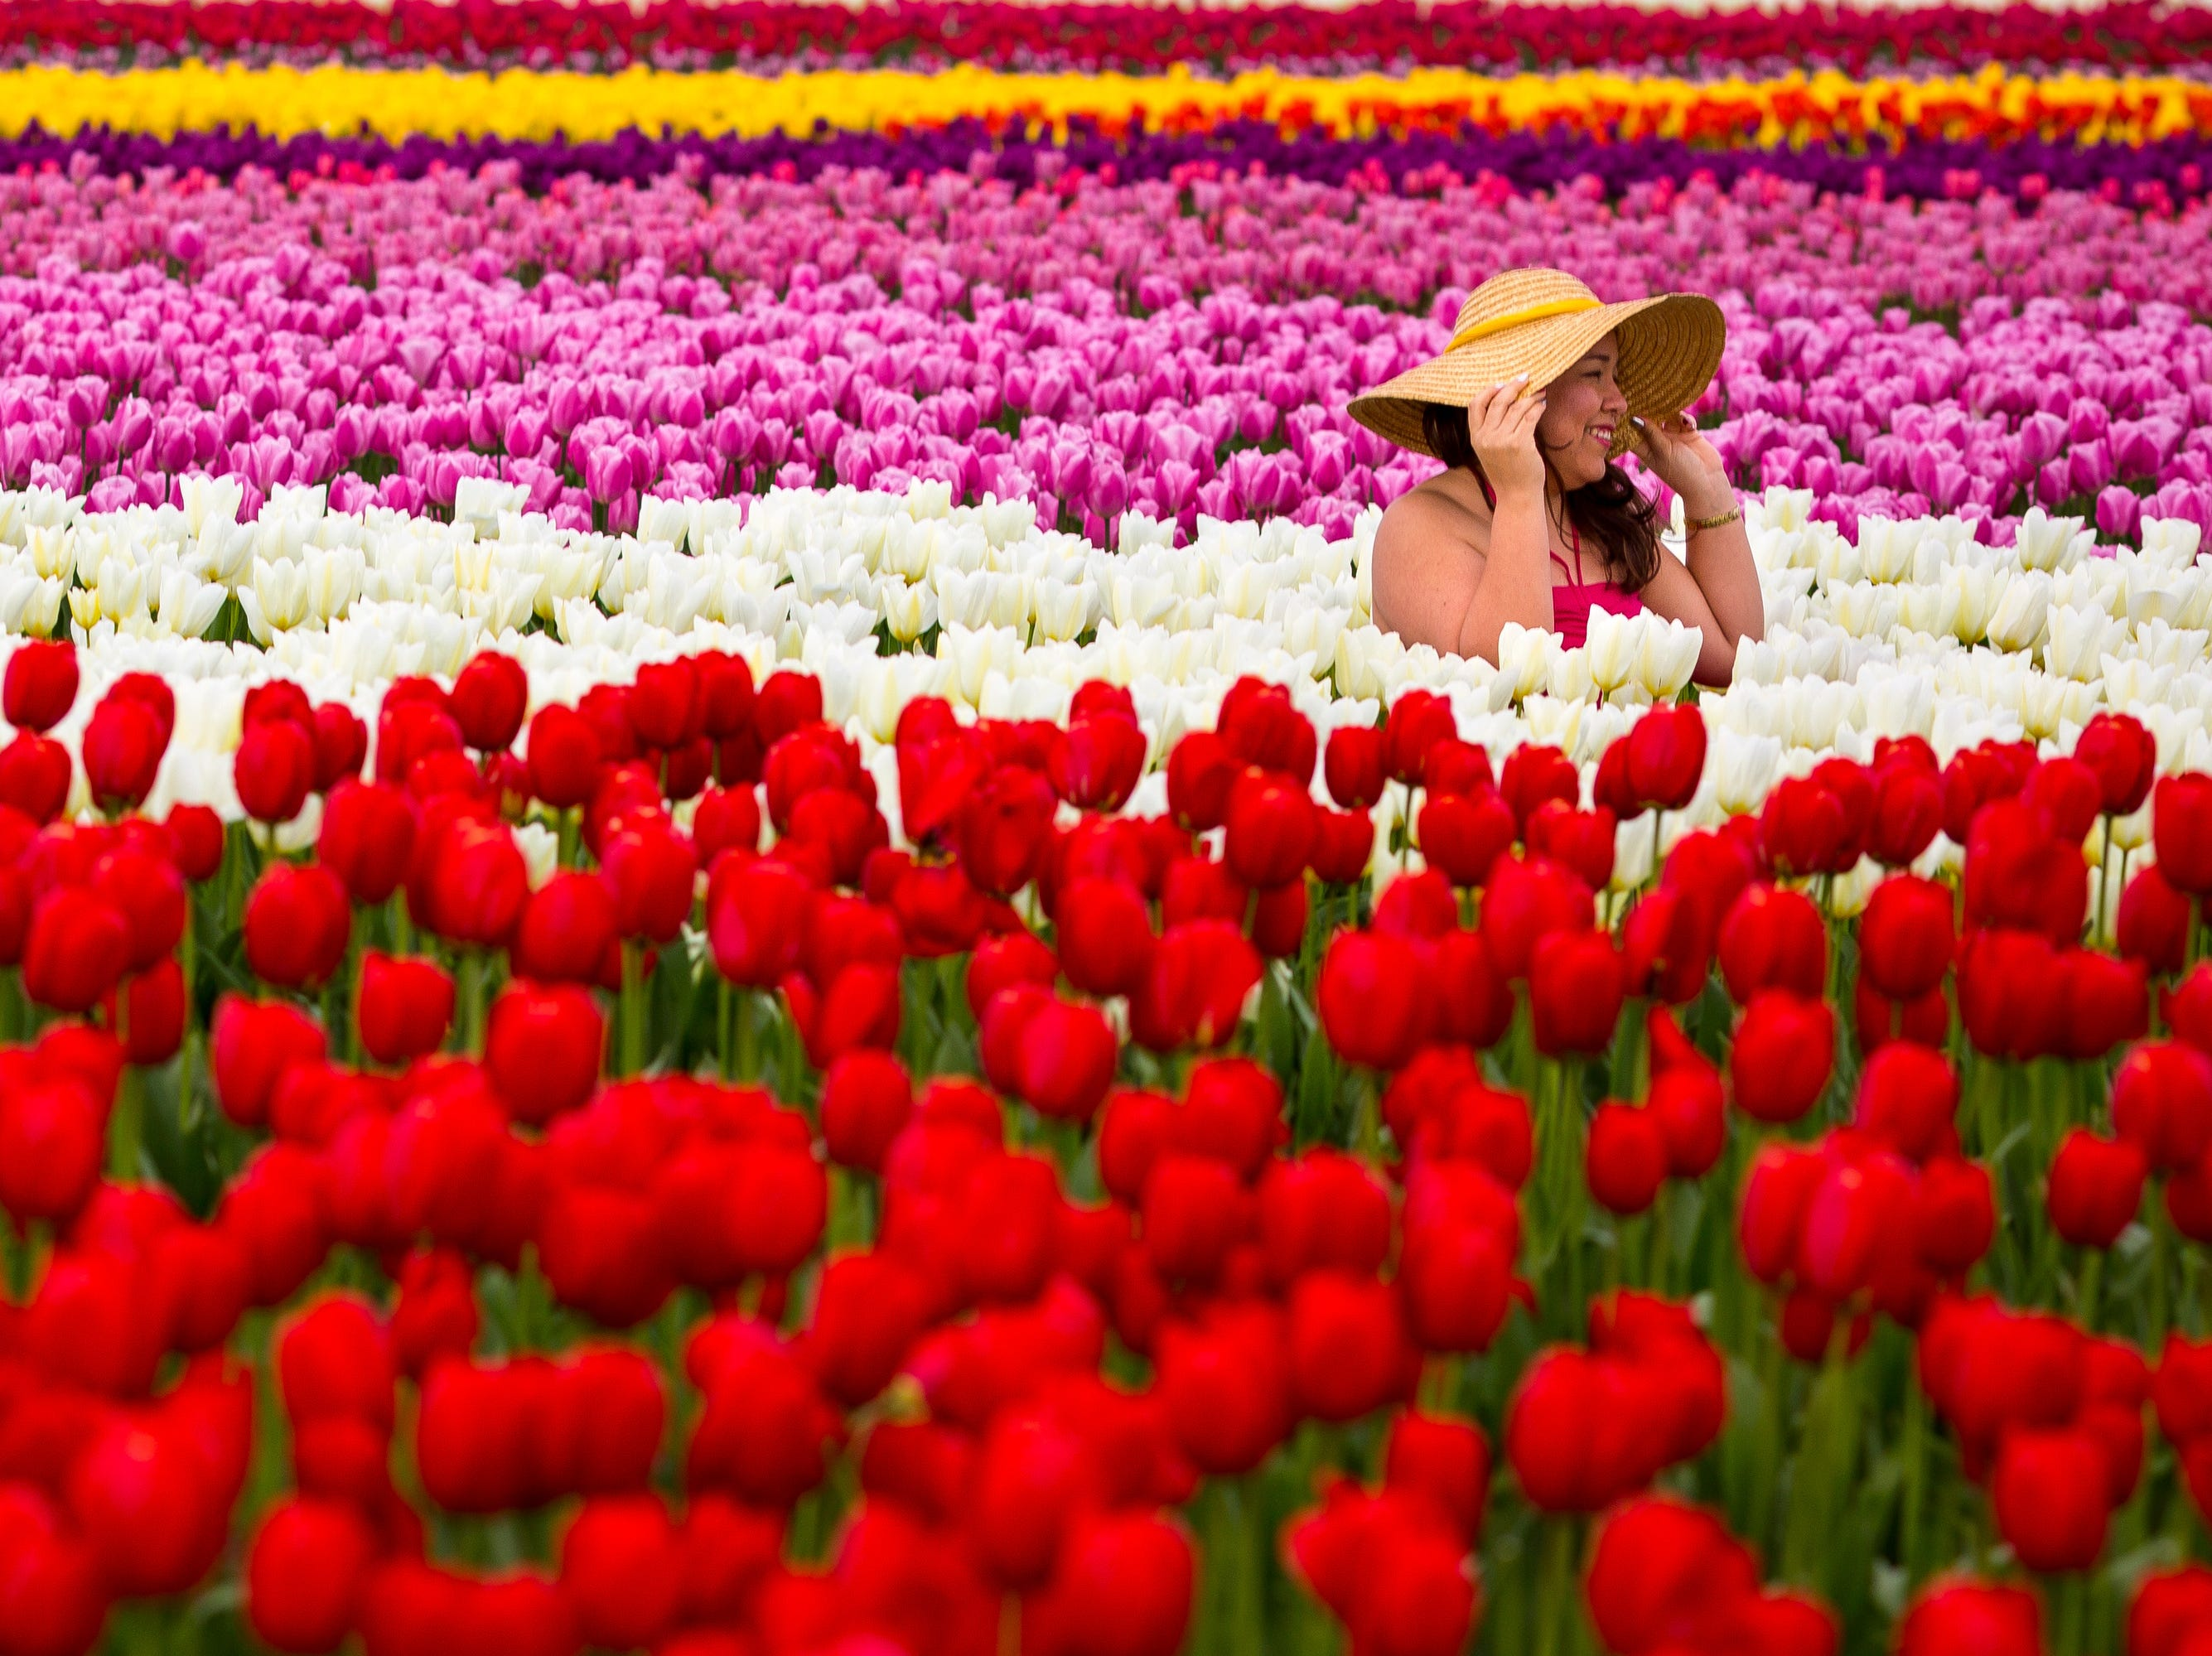 Lost in a sea of stunningly colorful bulbs, people pose for pictures during the annual Skagit Valley Tulip Festival Friday, April 11, 2014, between Mount Vernon and La Conner, Wash. Every year, hundreds of thousands of people come to the Skagit Valley in the spring to enjoy acres upon acres of nature's blossoming beauties. (AP Photo/seattlepi.com, Jordan Stead) ORG XMIT: WASEA104